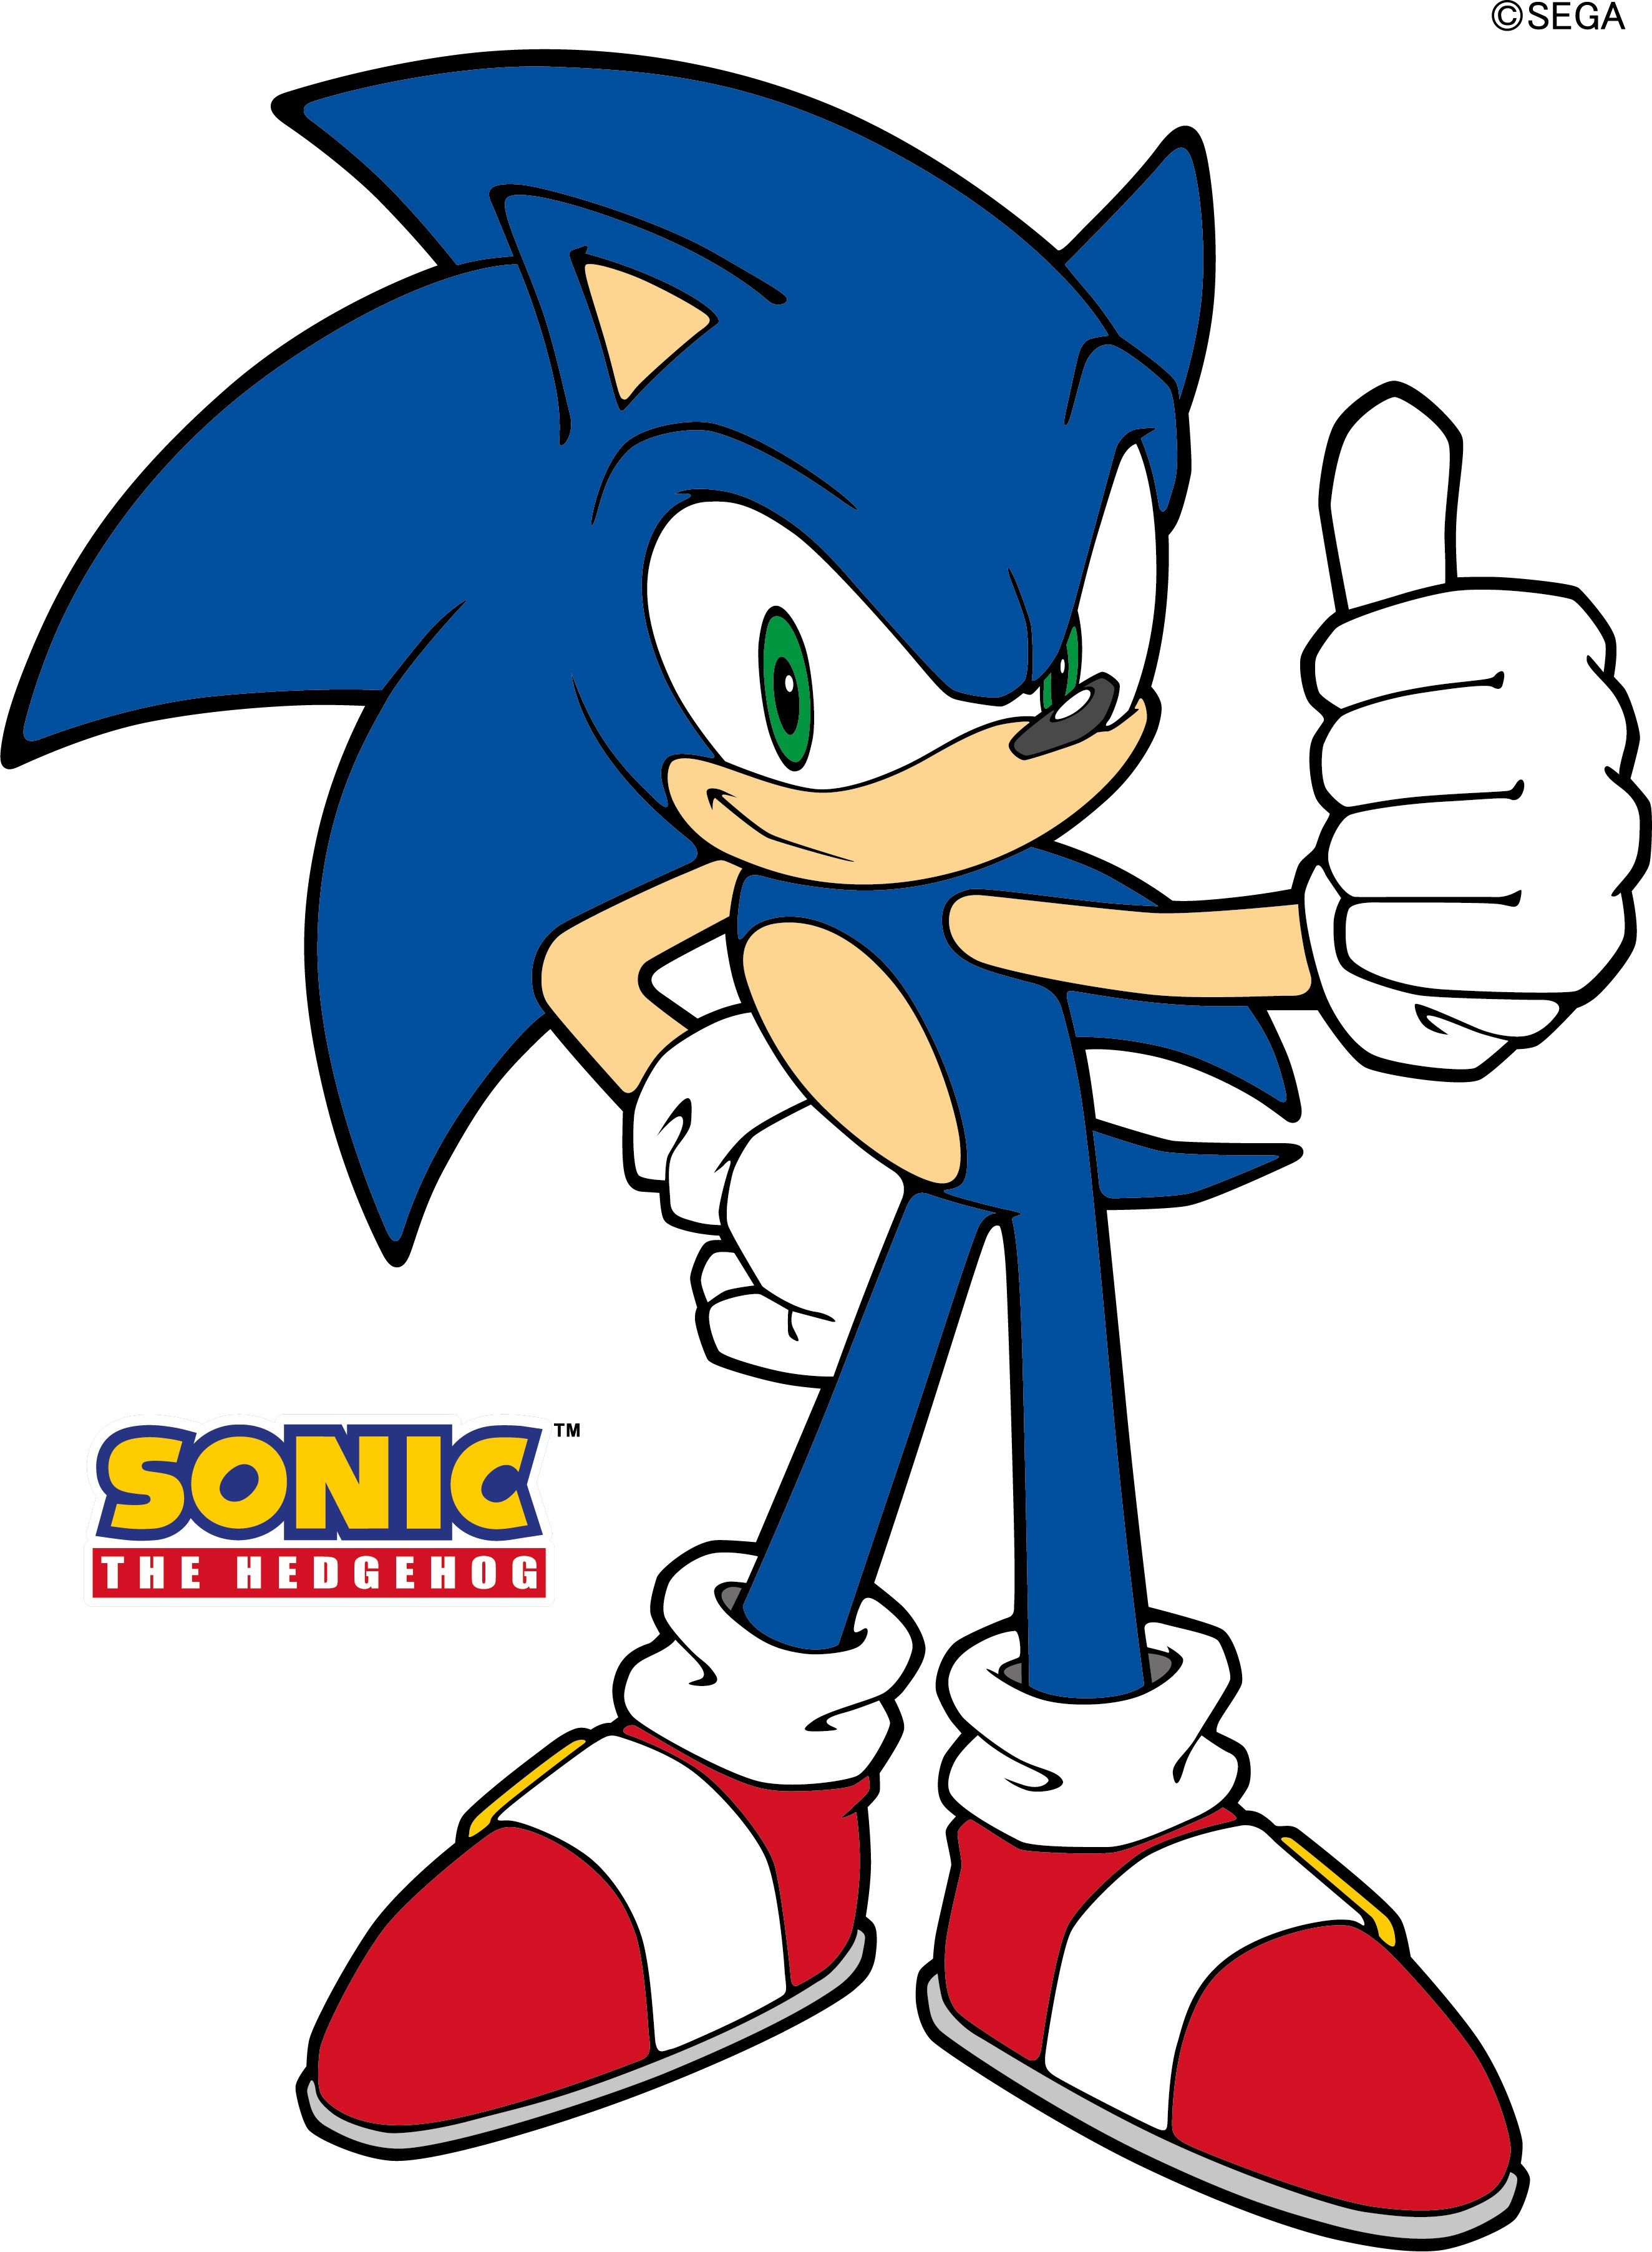 Son 2d 001 Isolate Jpg 2648 3609 Sonic Sonic The Hedgehog Digital Drawing